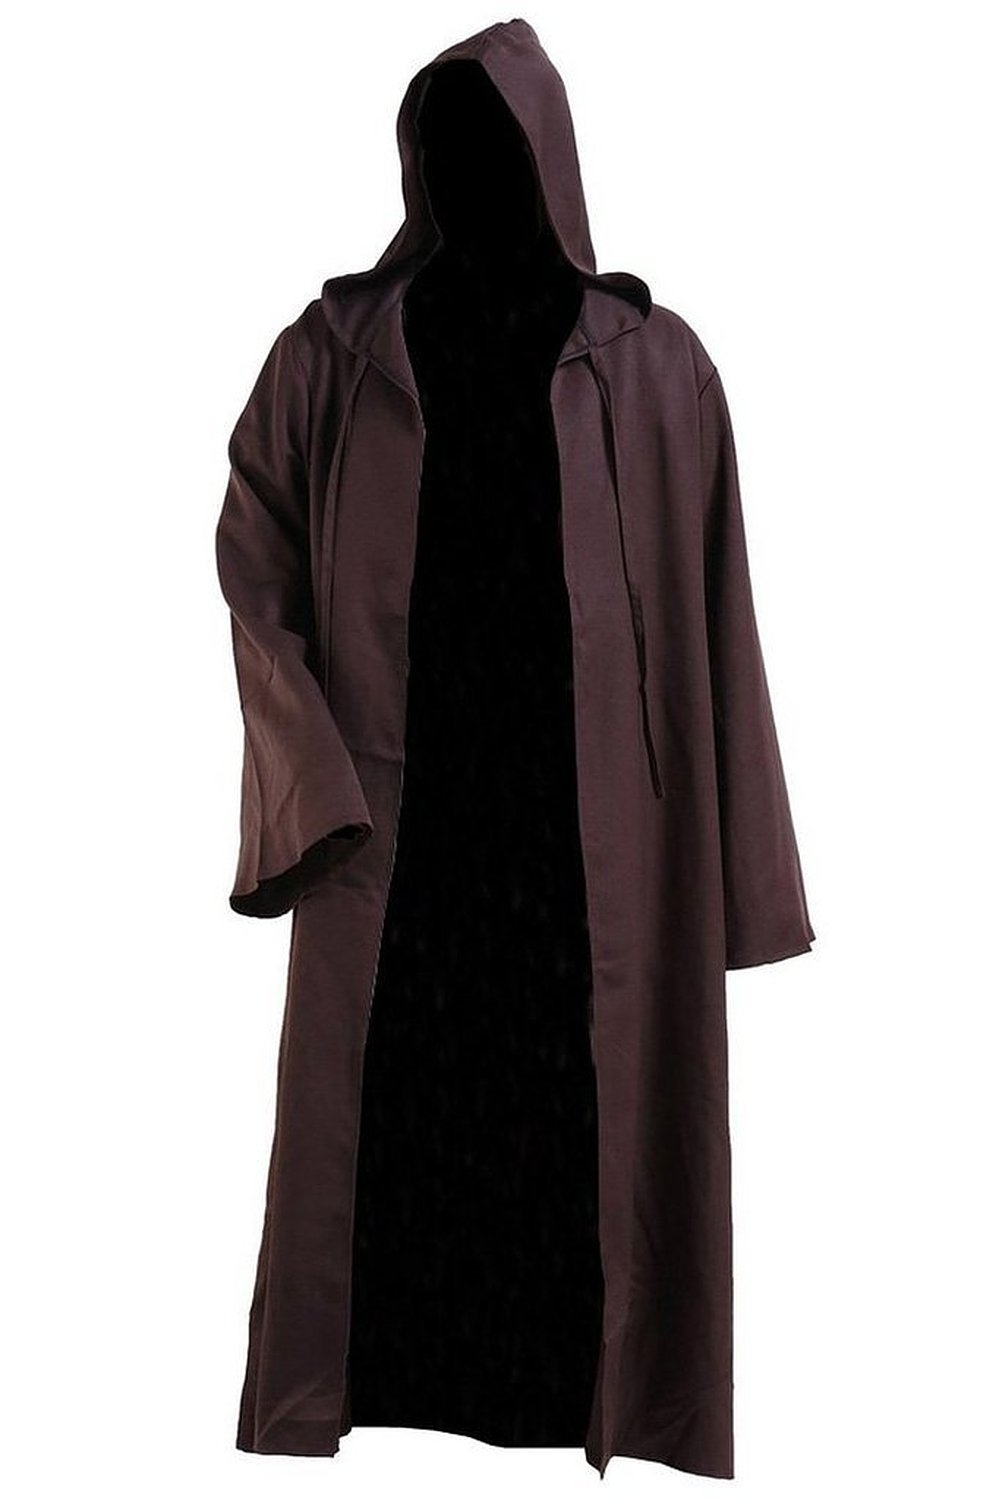 new arrival star wars kenobi jedi tunic men hooded brown